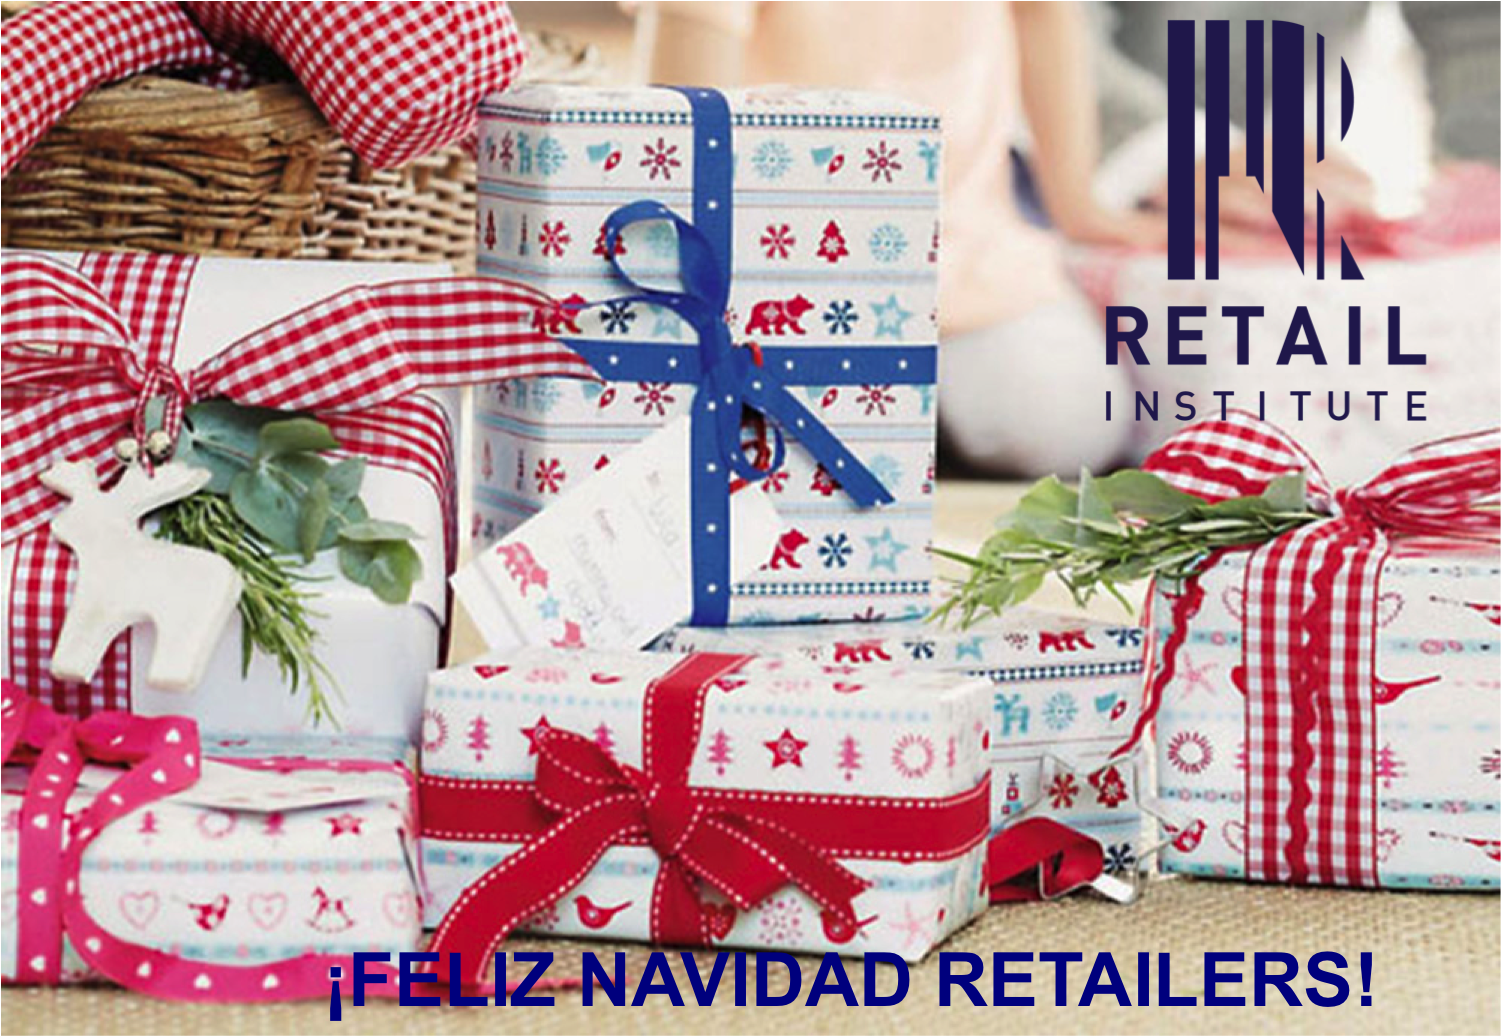 Retail Institute Merry Xmas